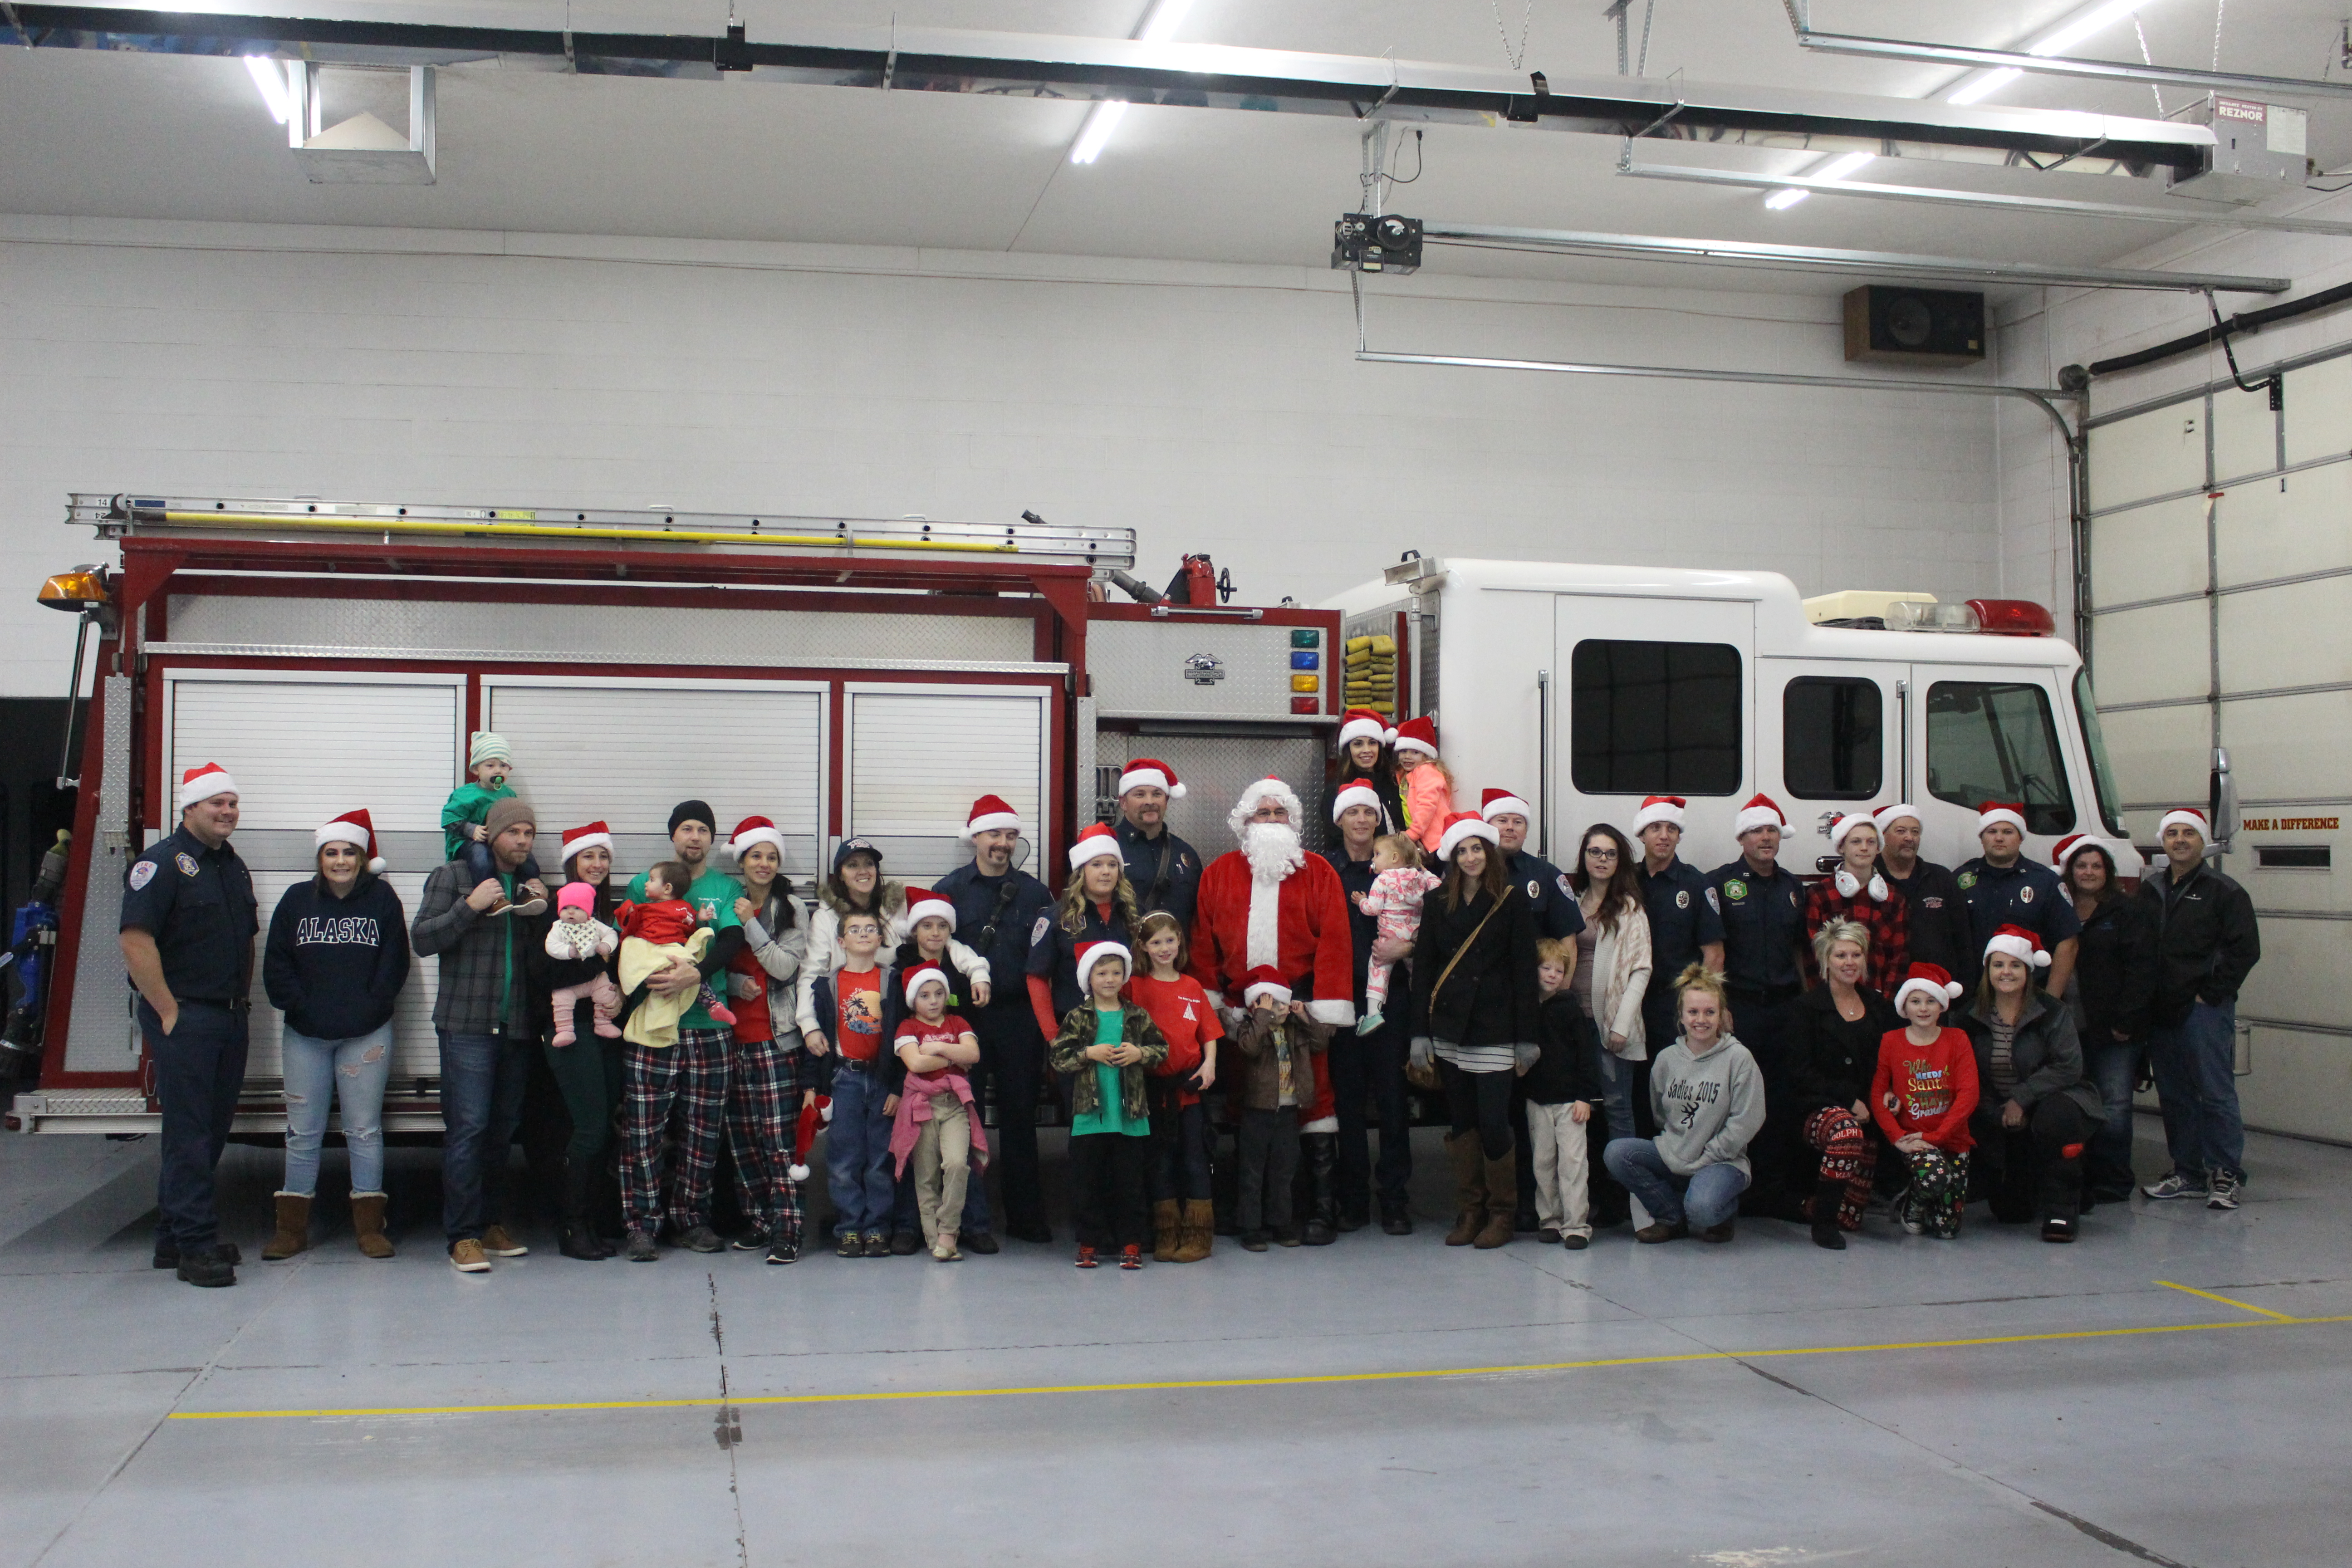 Washington City Fire personnel and their families pose next to a fire engine before delivering gifts for the Angel Tree Project, Washington, Utah, Dec. 22, 2016 | Photo by Joseph Witham, St. George News